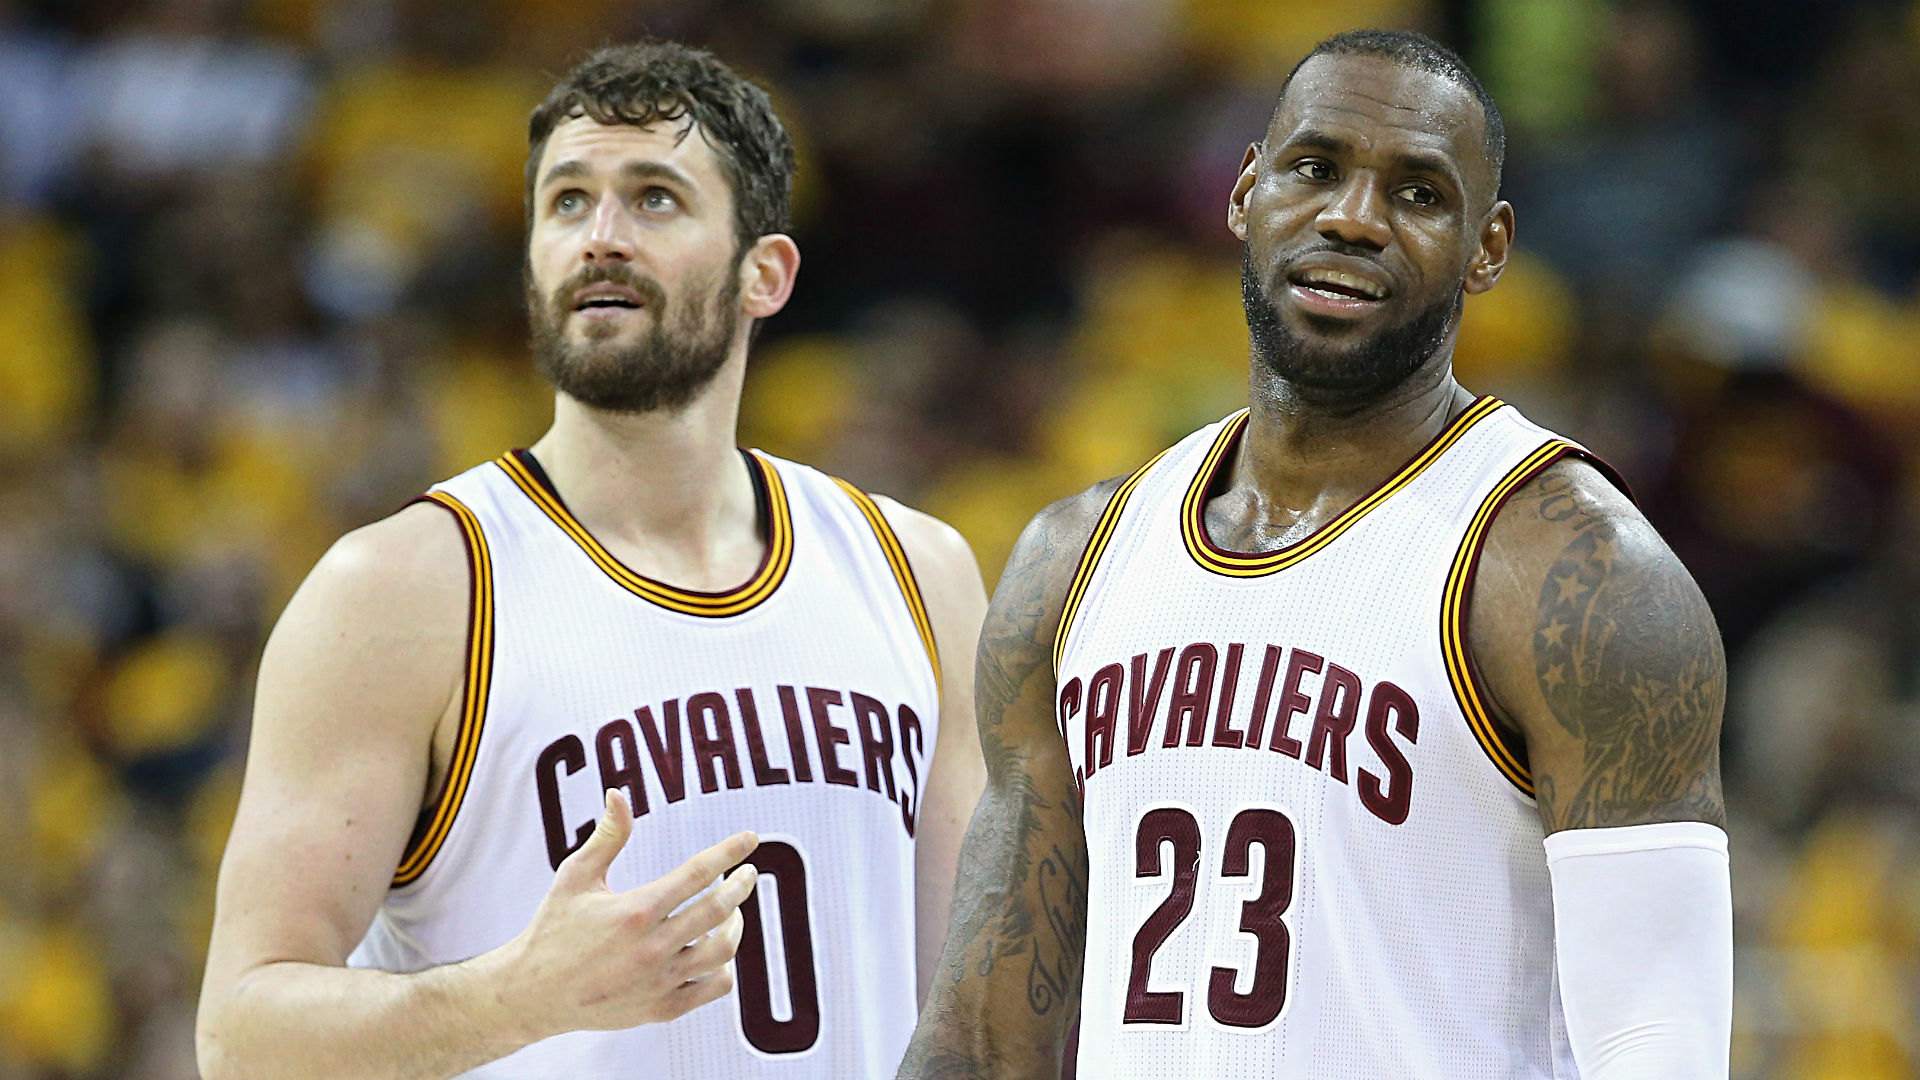 Kevin-love-injury-health-hurt-lebron-james-cavs-cavaliers-playoffs-raptors-finalsjpg_clg9irs6d78x1ov8xathpje1v